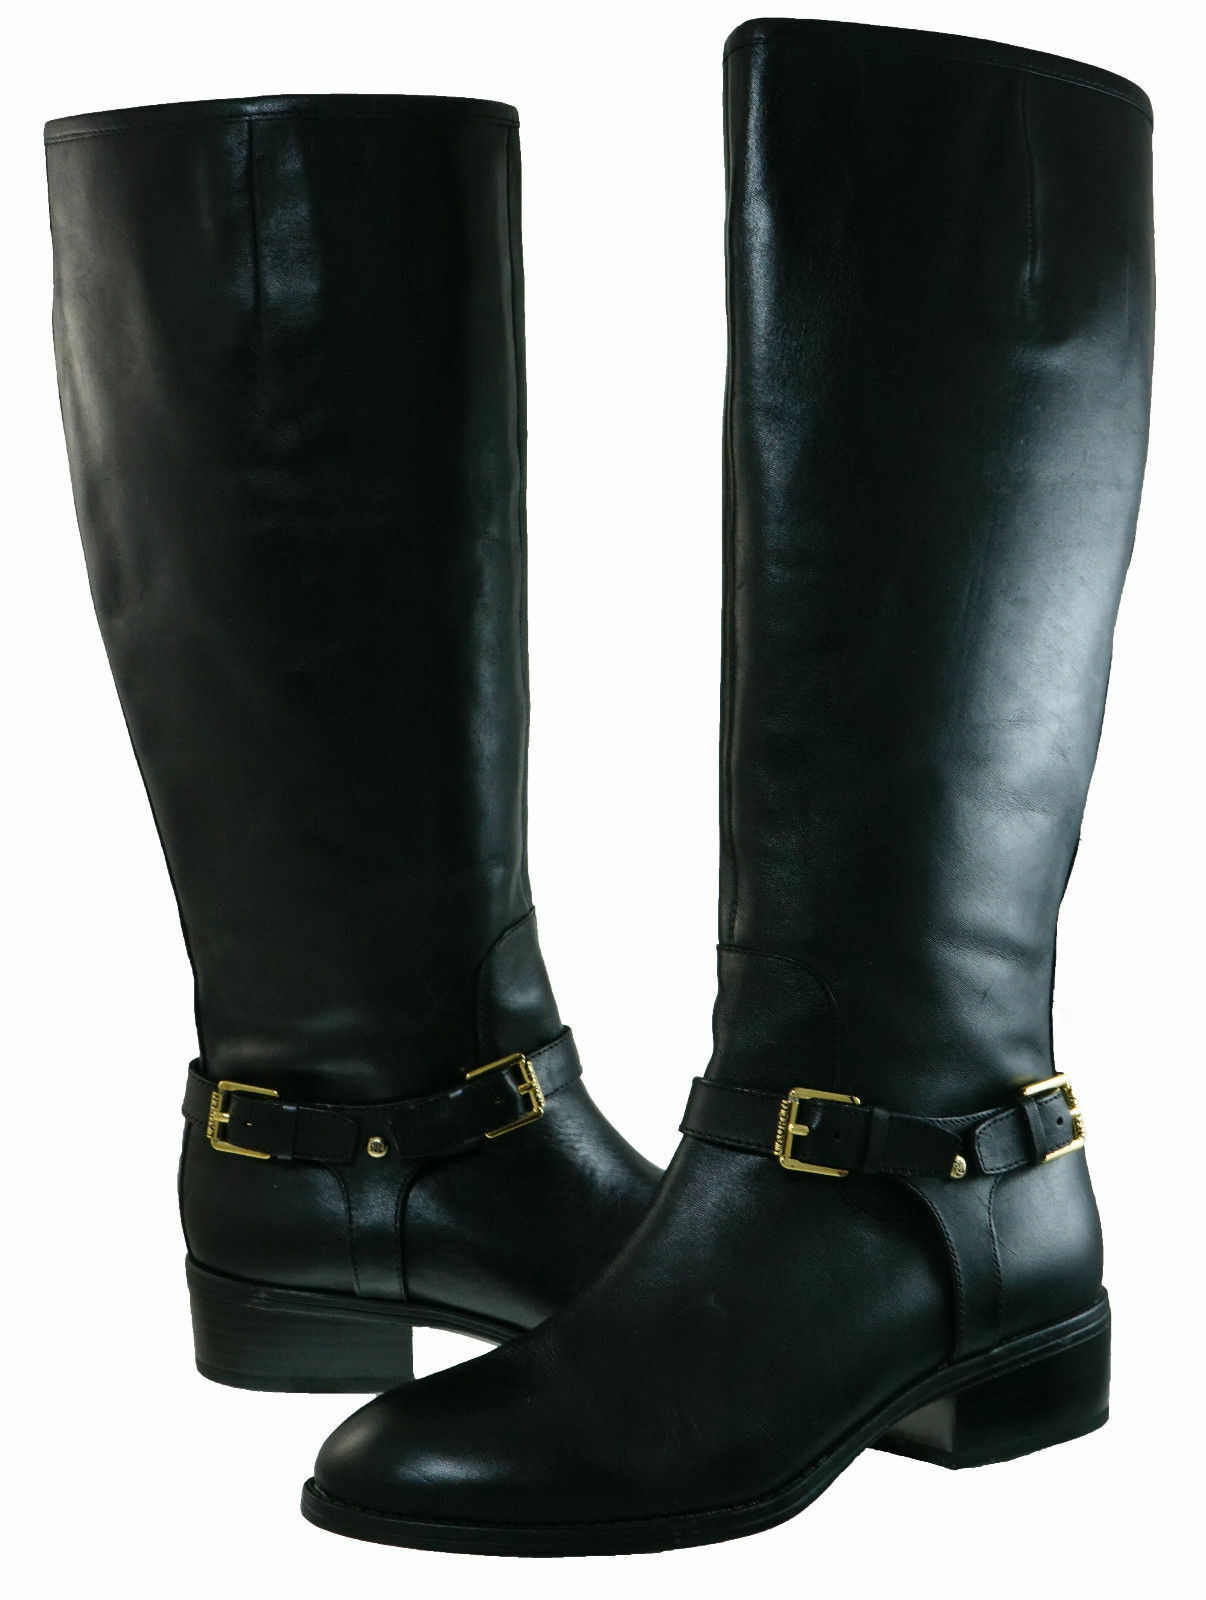 Ralph Lauren Womens Marion Wide Calf Strap Buckle Zipper Pull On Knee High Boots